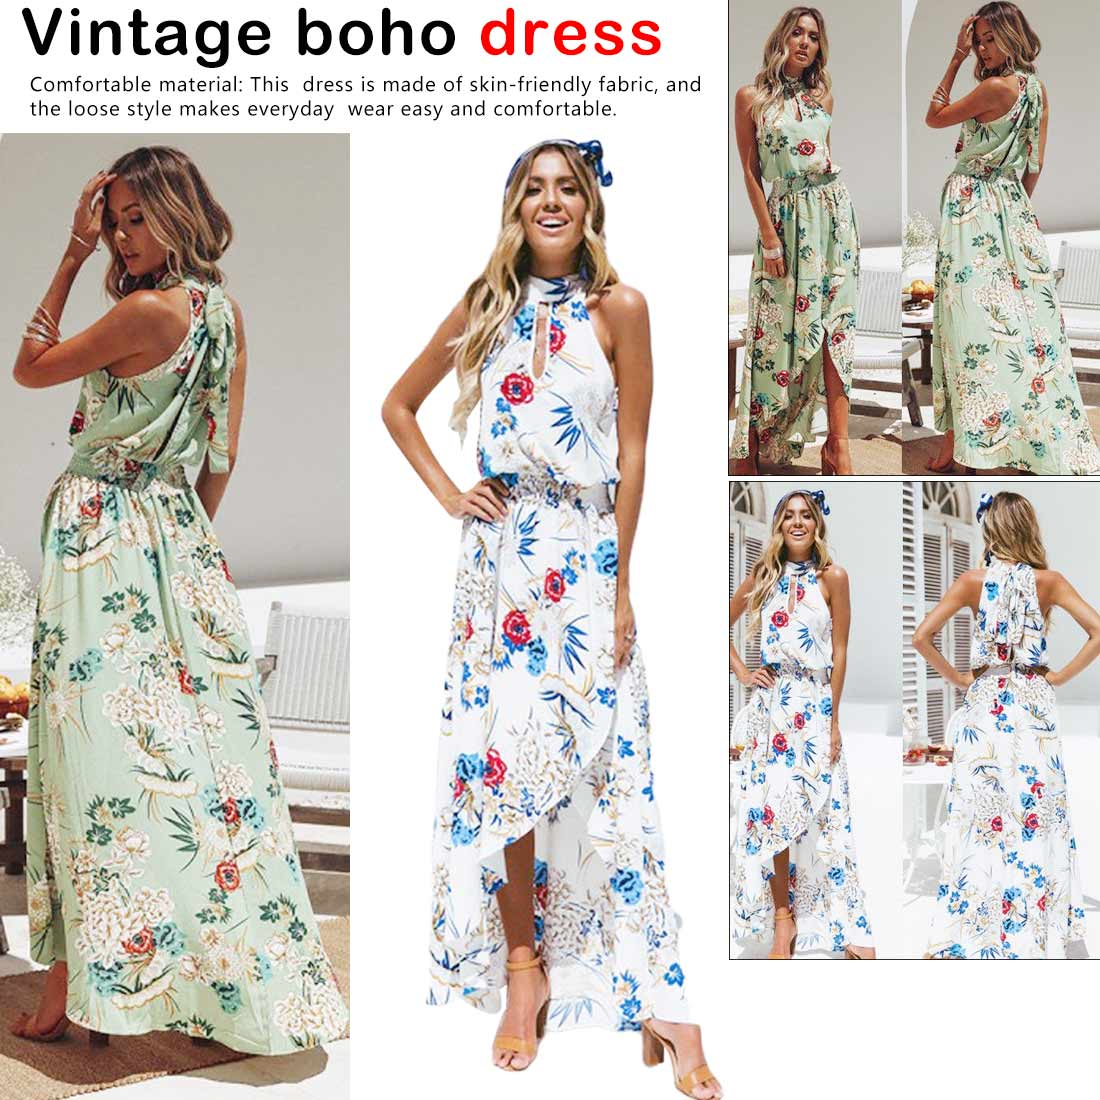 Halter Style Women Casual Loose Dress Floral Printing Sleevelss Ladies BOHO Beach Sundress Lady Maxi Dress